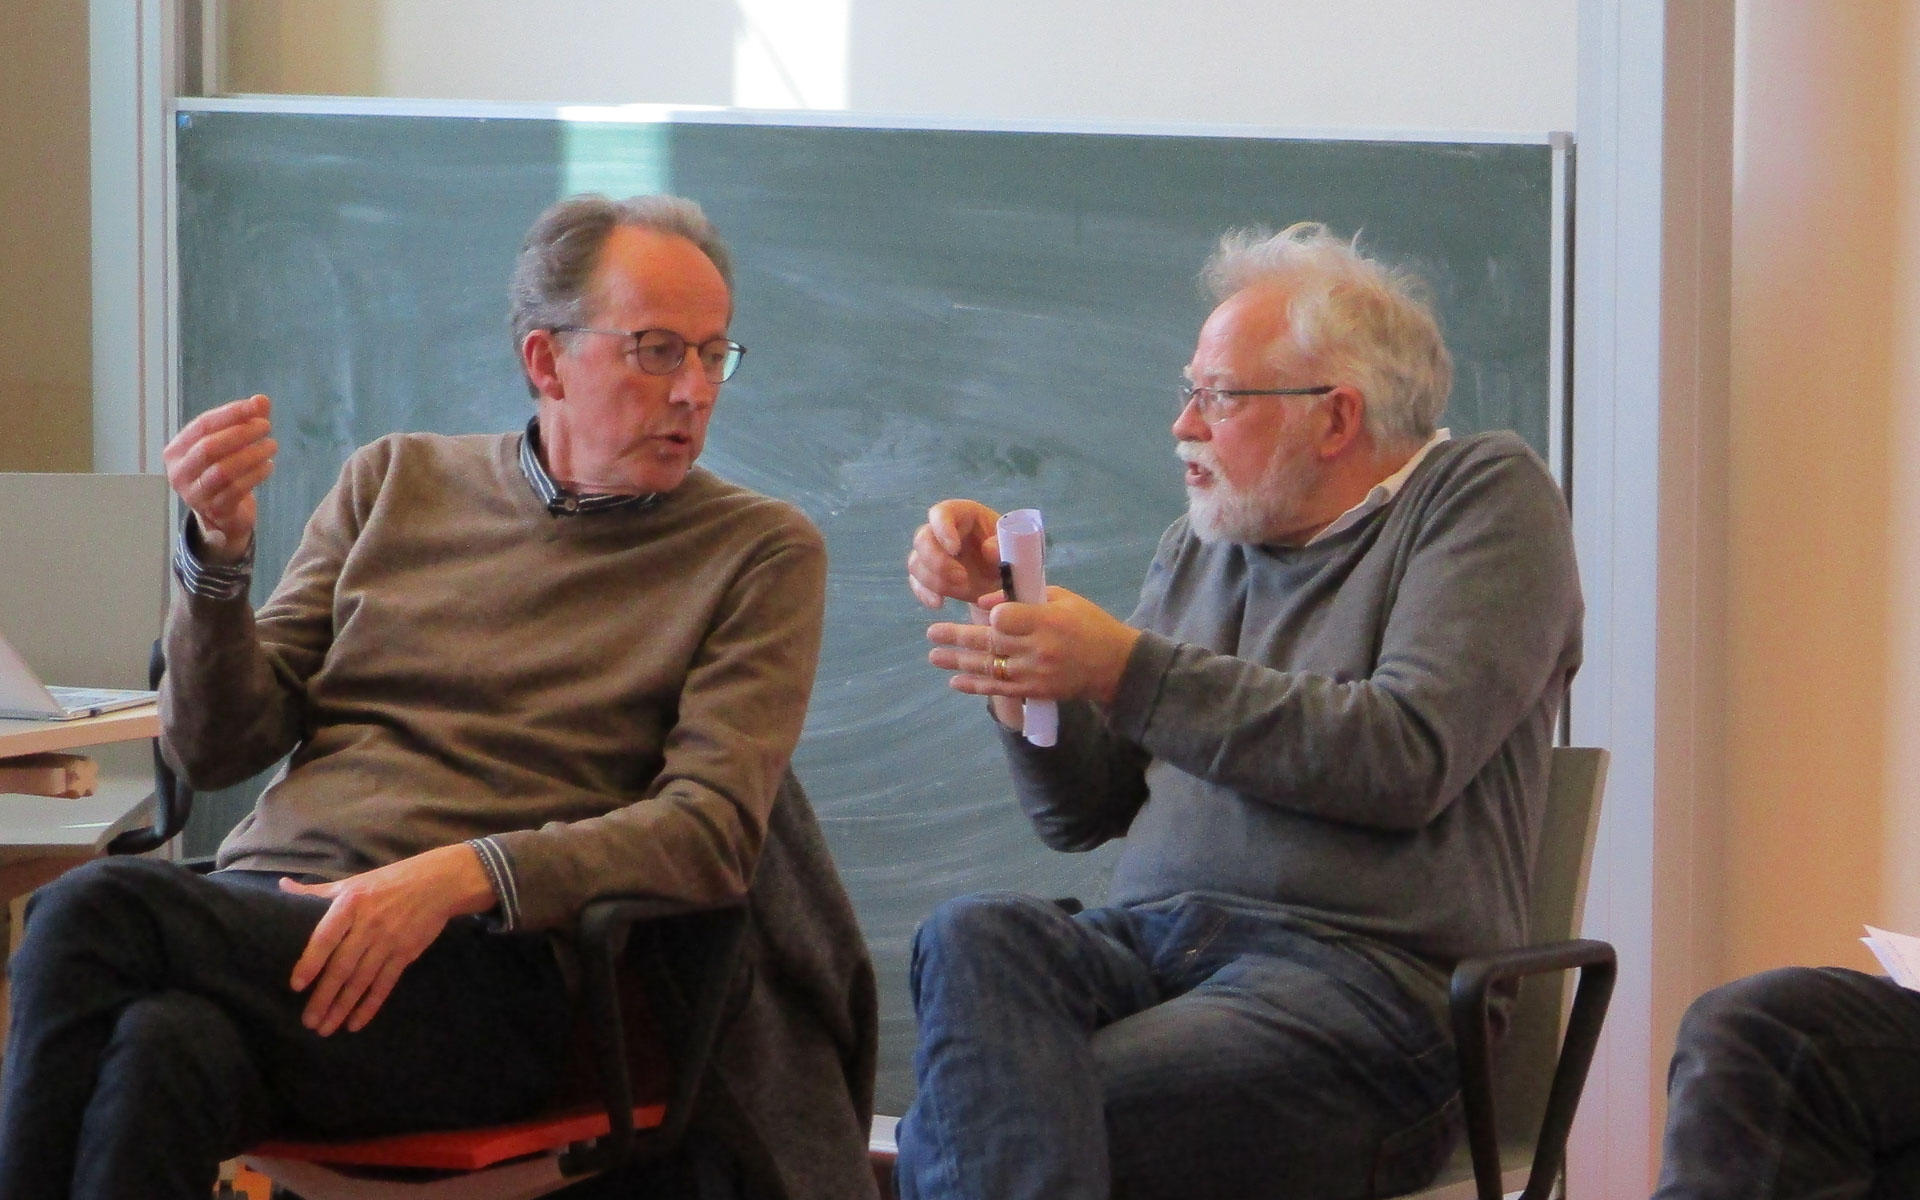 History and Theory in Dutch Architecture Education today - panel discussion with Bernard Colenbrander and Herman van Bergeijk